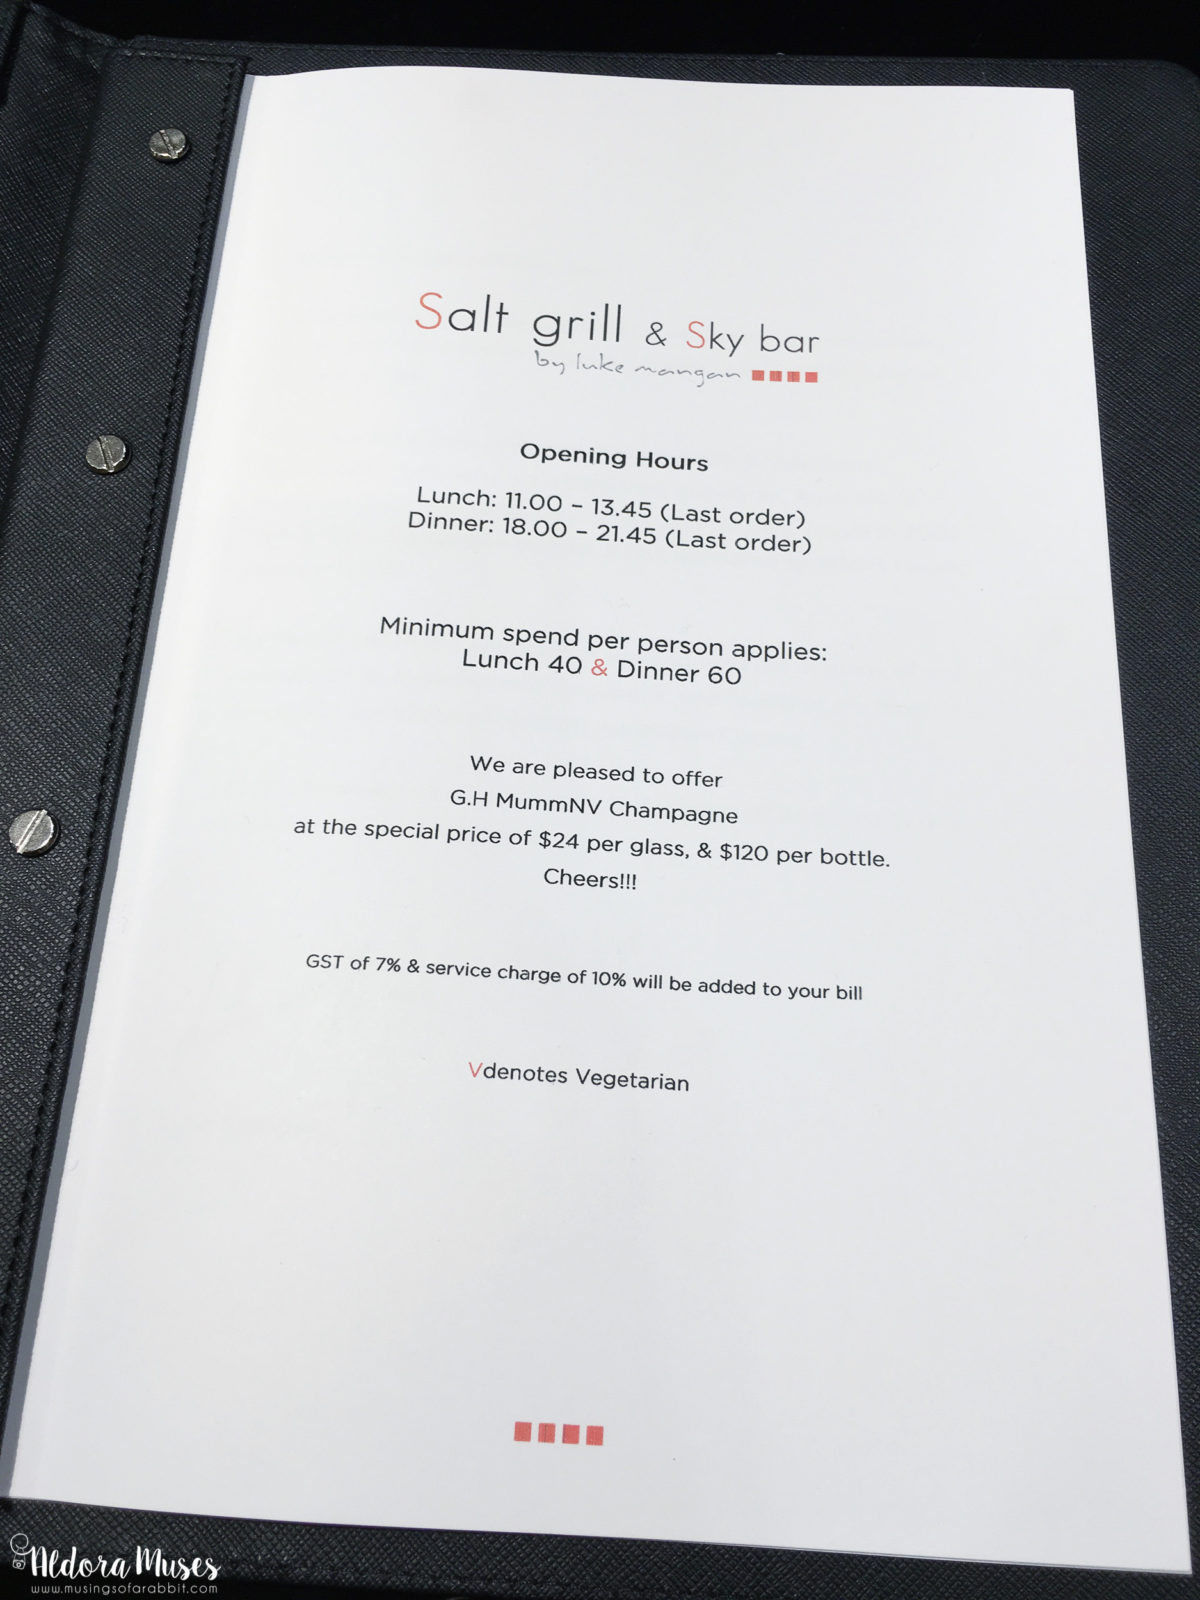 Salt Grill and Sky Bar - Hubs' Birthday 2016